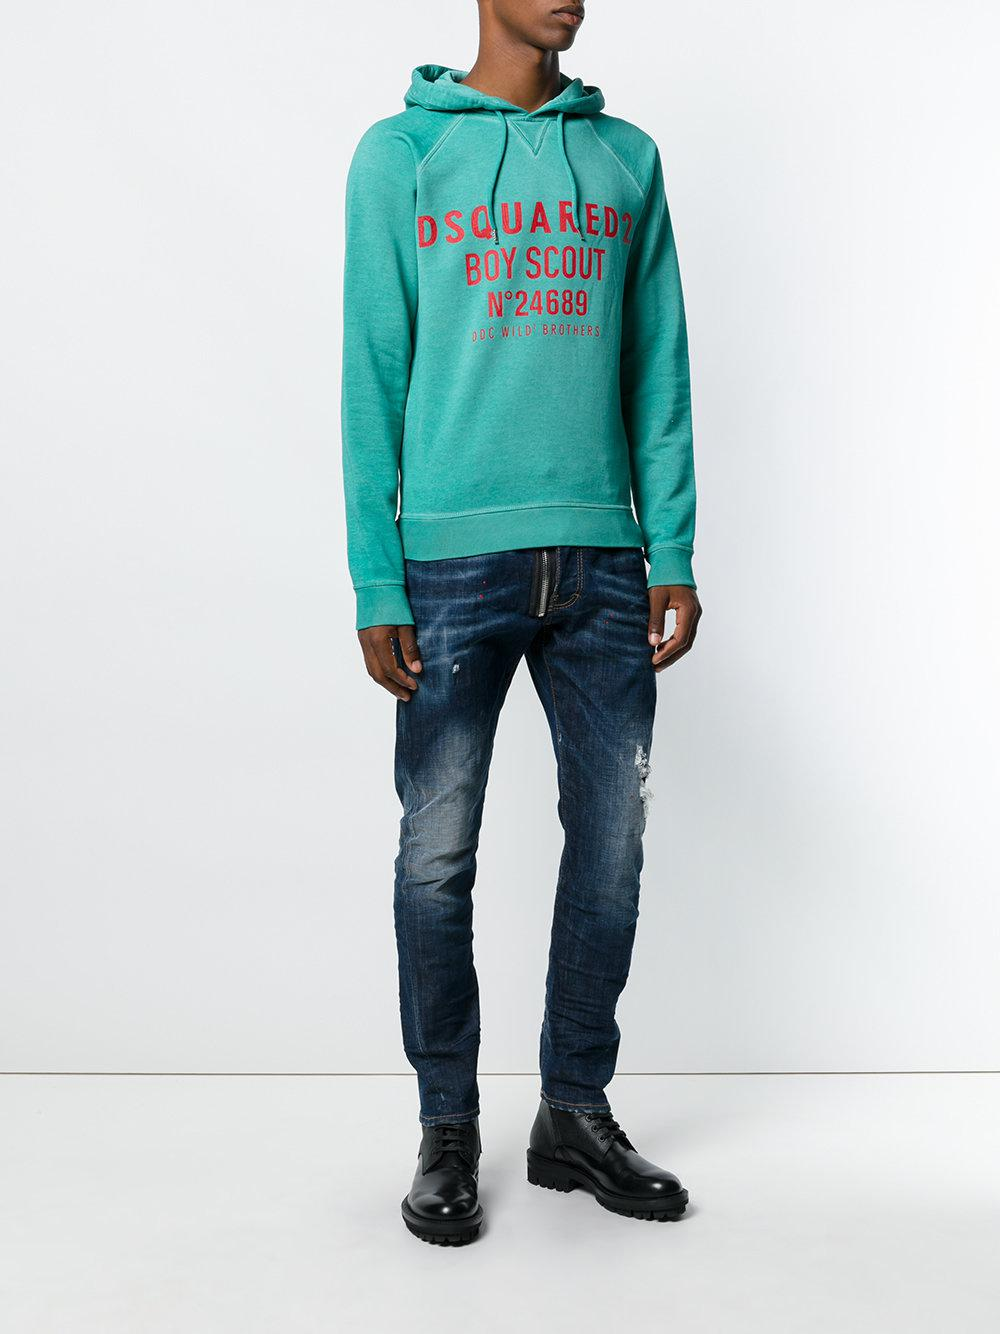 DSquared² Cotton Boy Scout Printed Hoodie in Green for Men